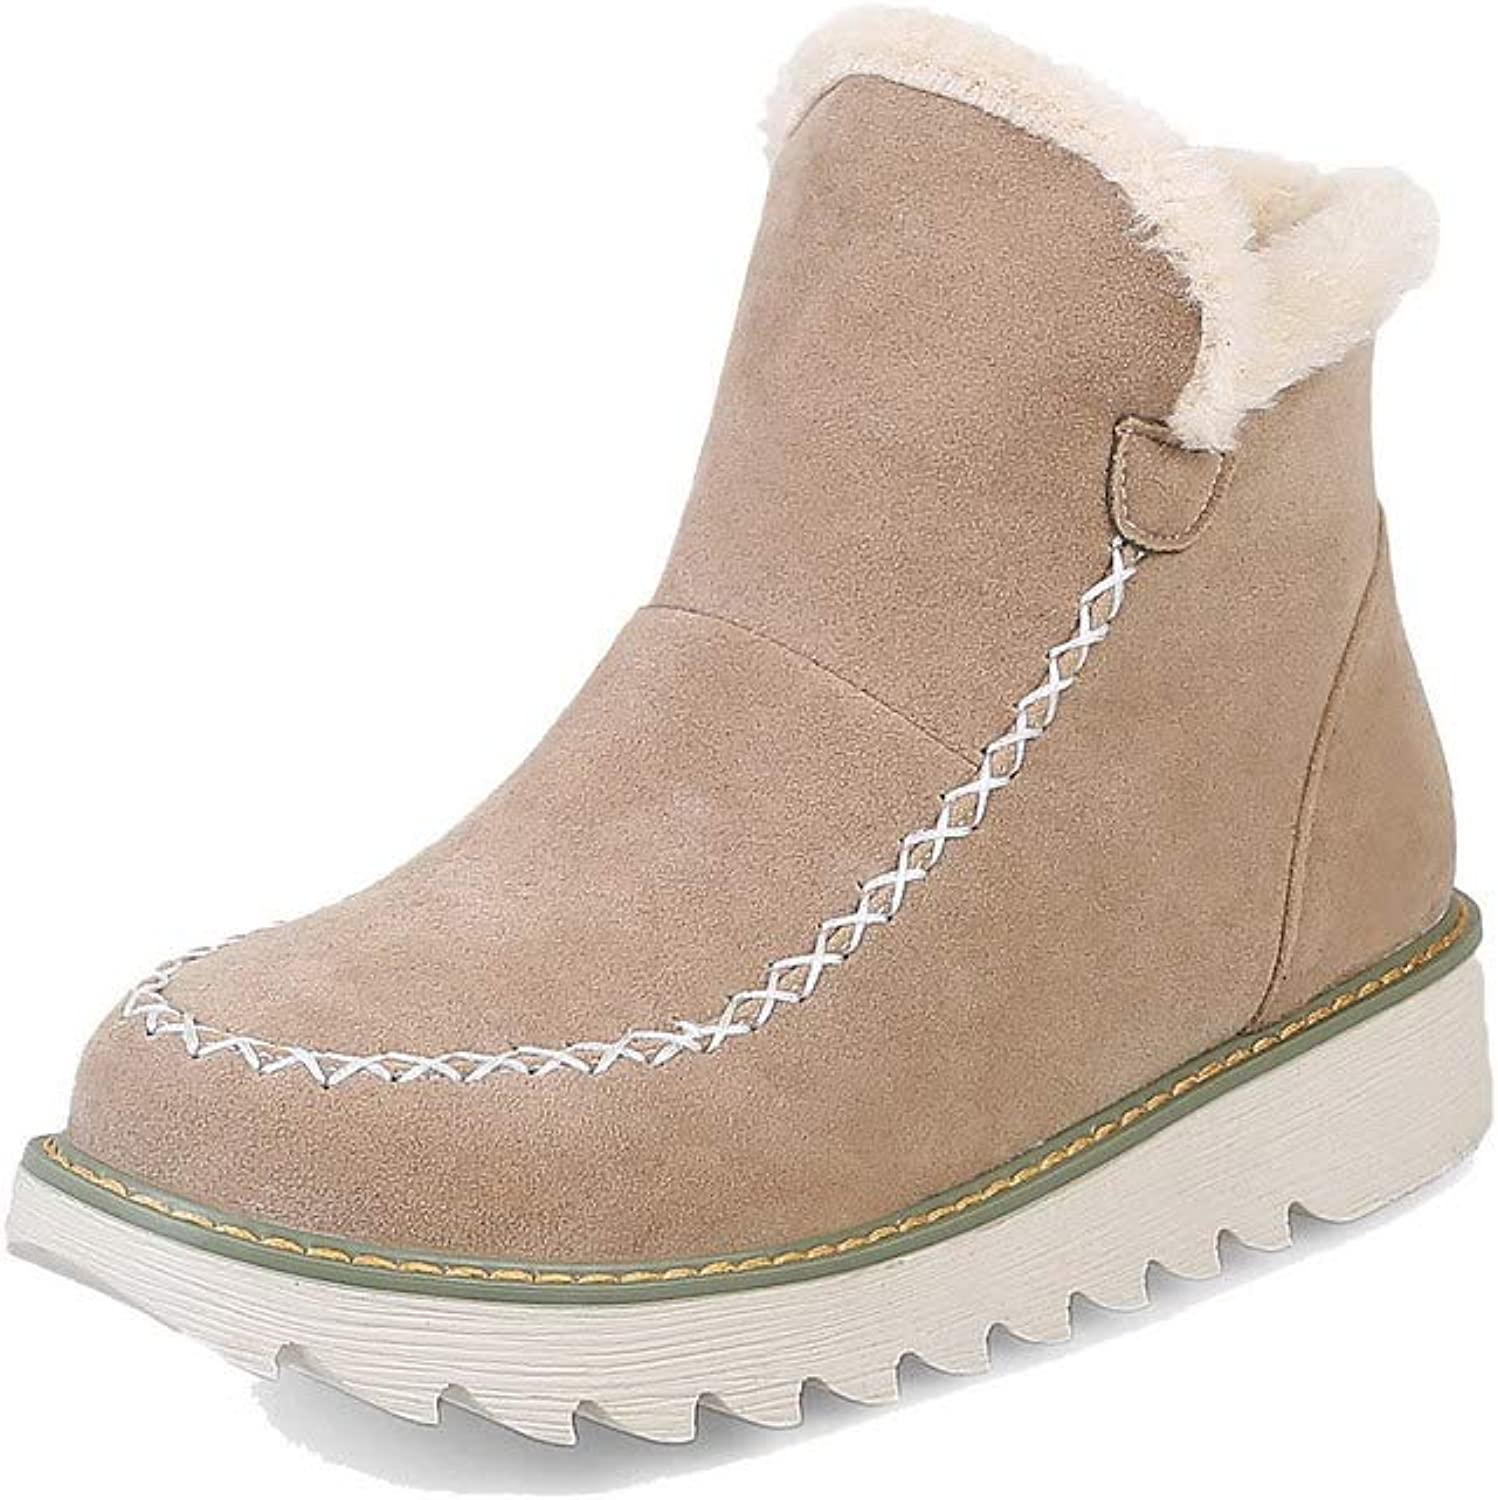 AmoonyFashion Women's Low-Heels Assorted color Round-Toe Frosted Pull-On Boots, BUSXT126773